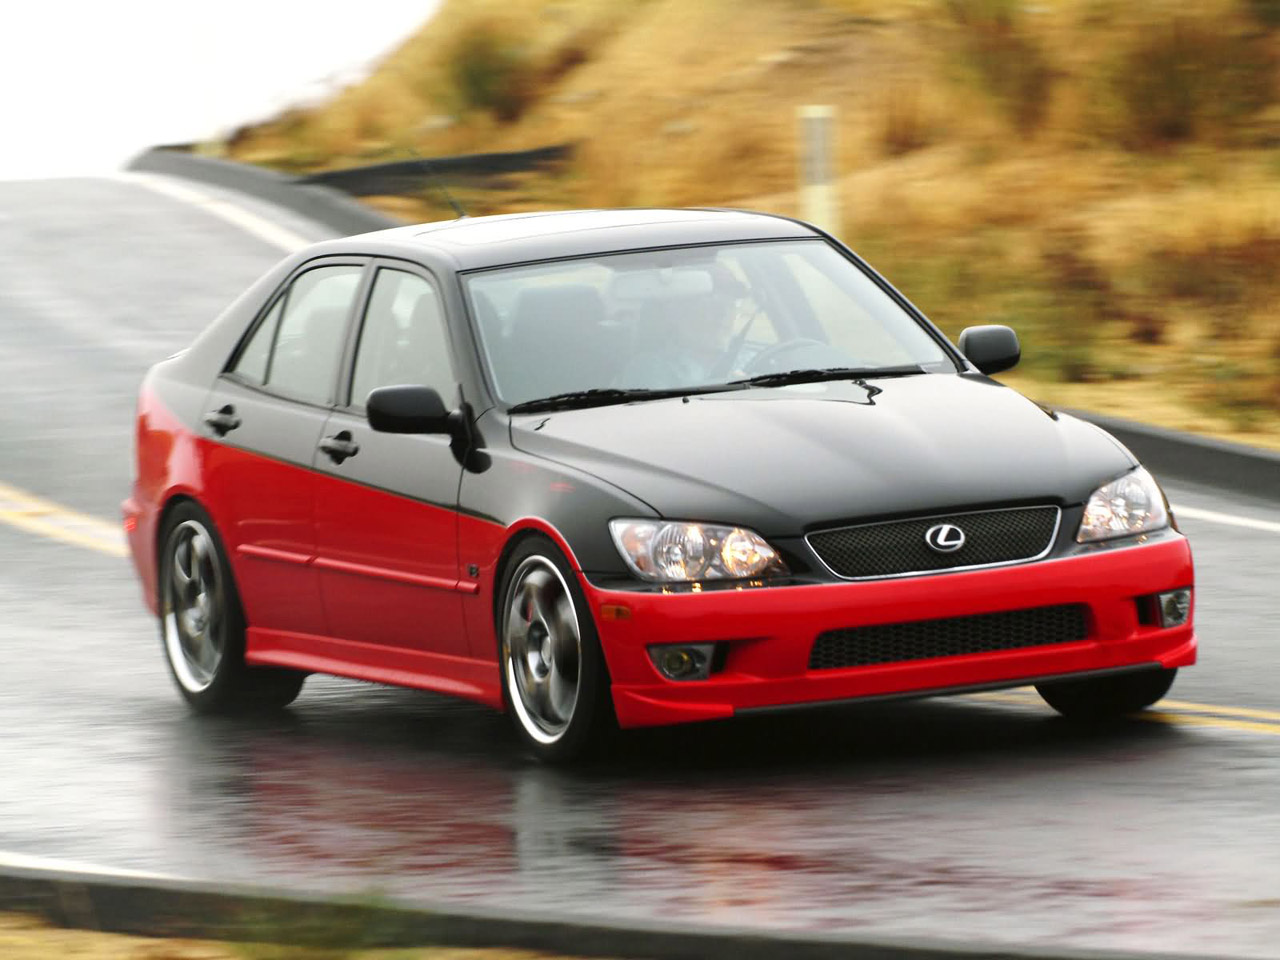 Lexus IS 430 in motion, front quarter